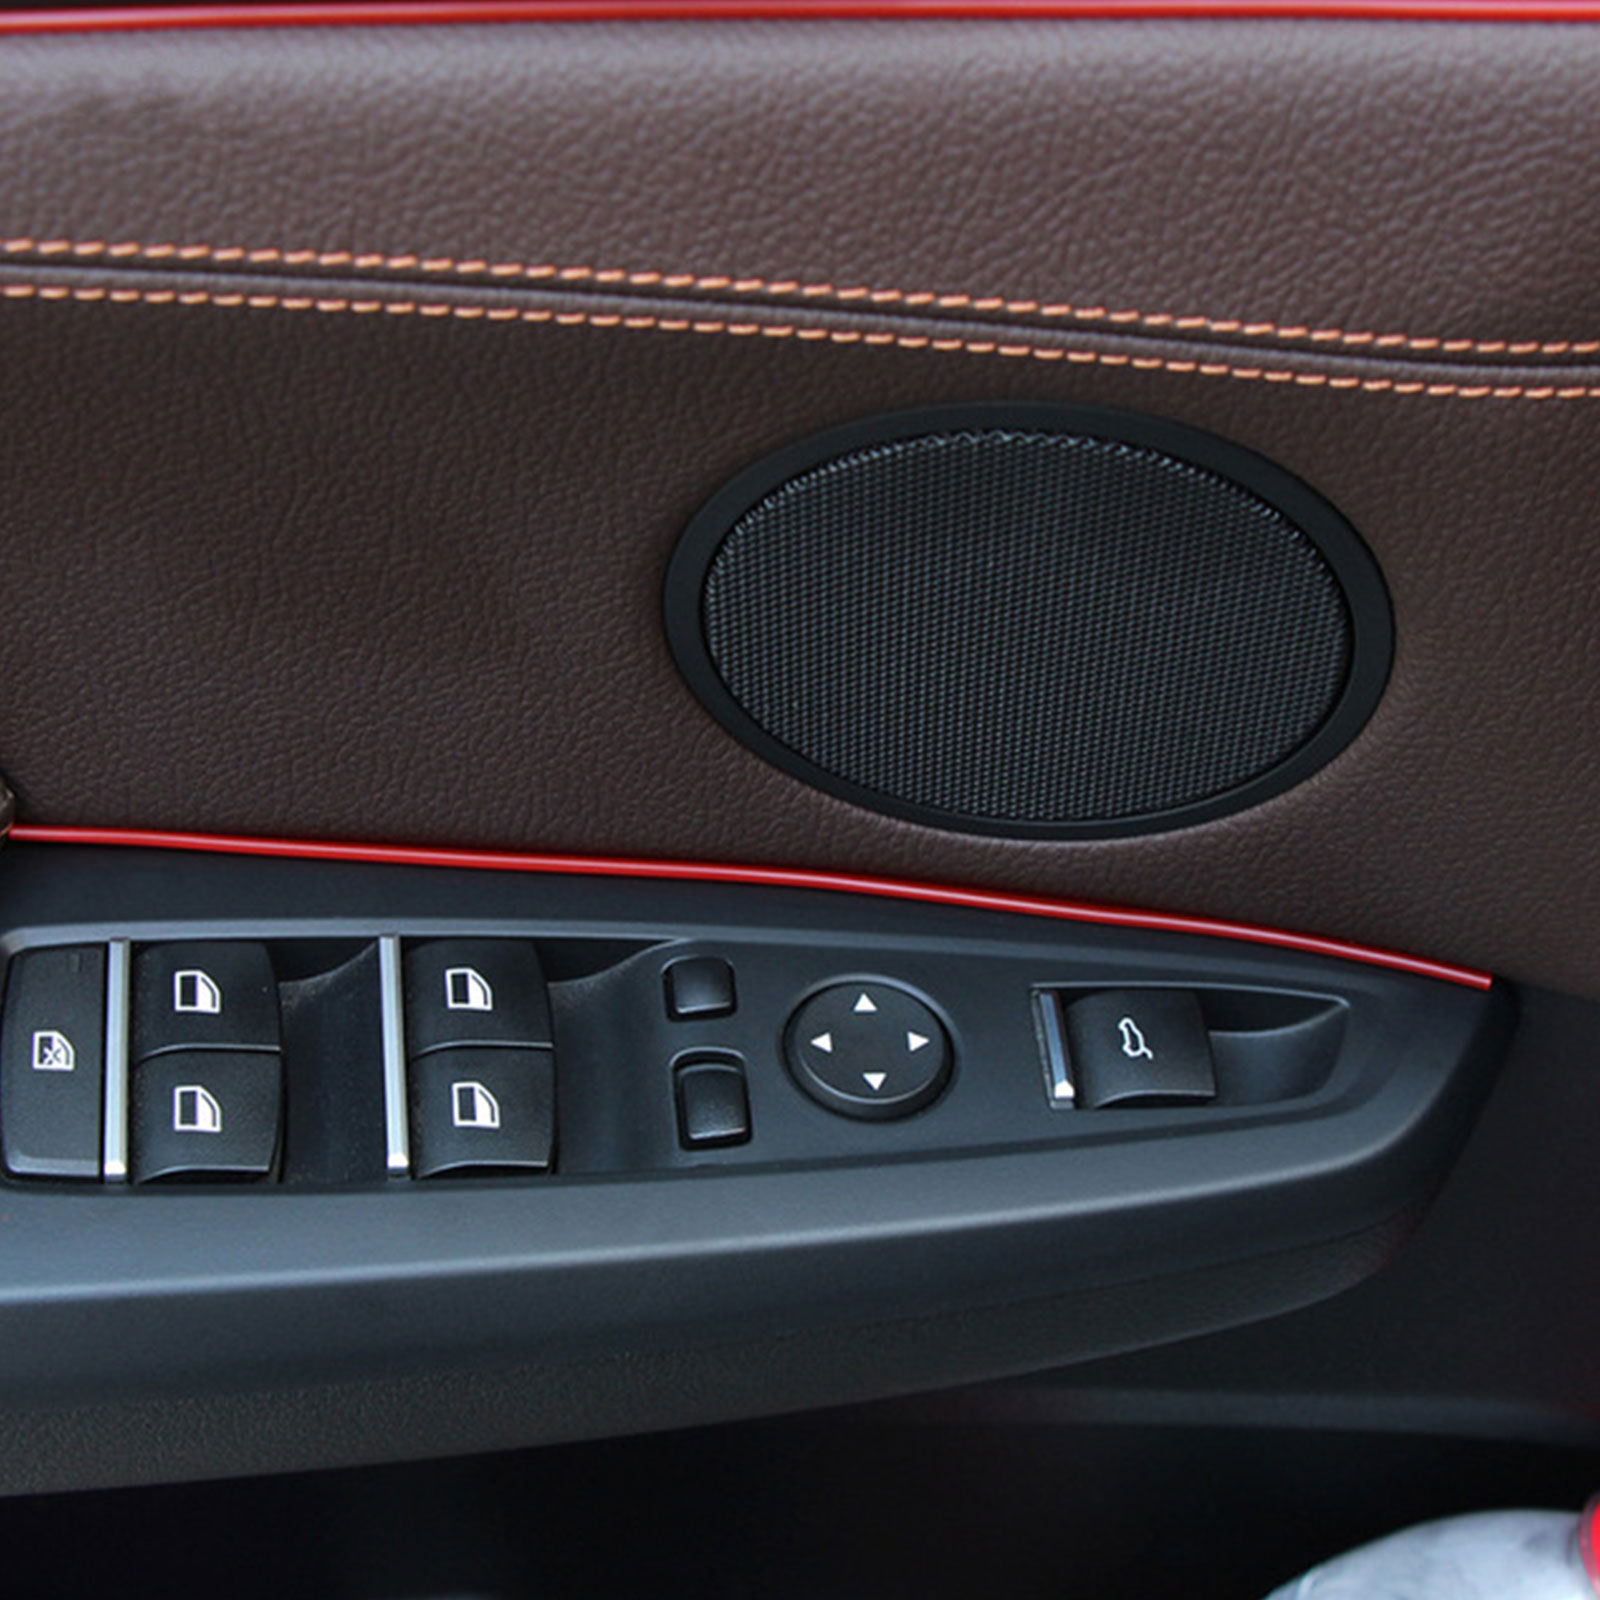 5M-Door-Gap-Trim-Molding-Moulding-Line-Edge-Strip-Red-For-Car-Interior-Accessory thumbnail 3